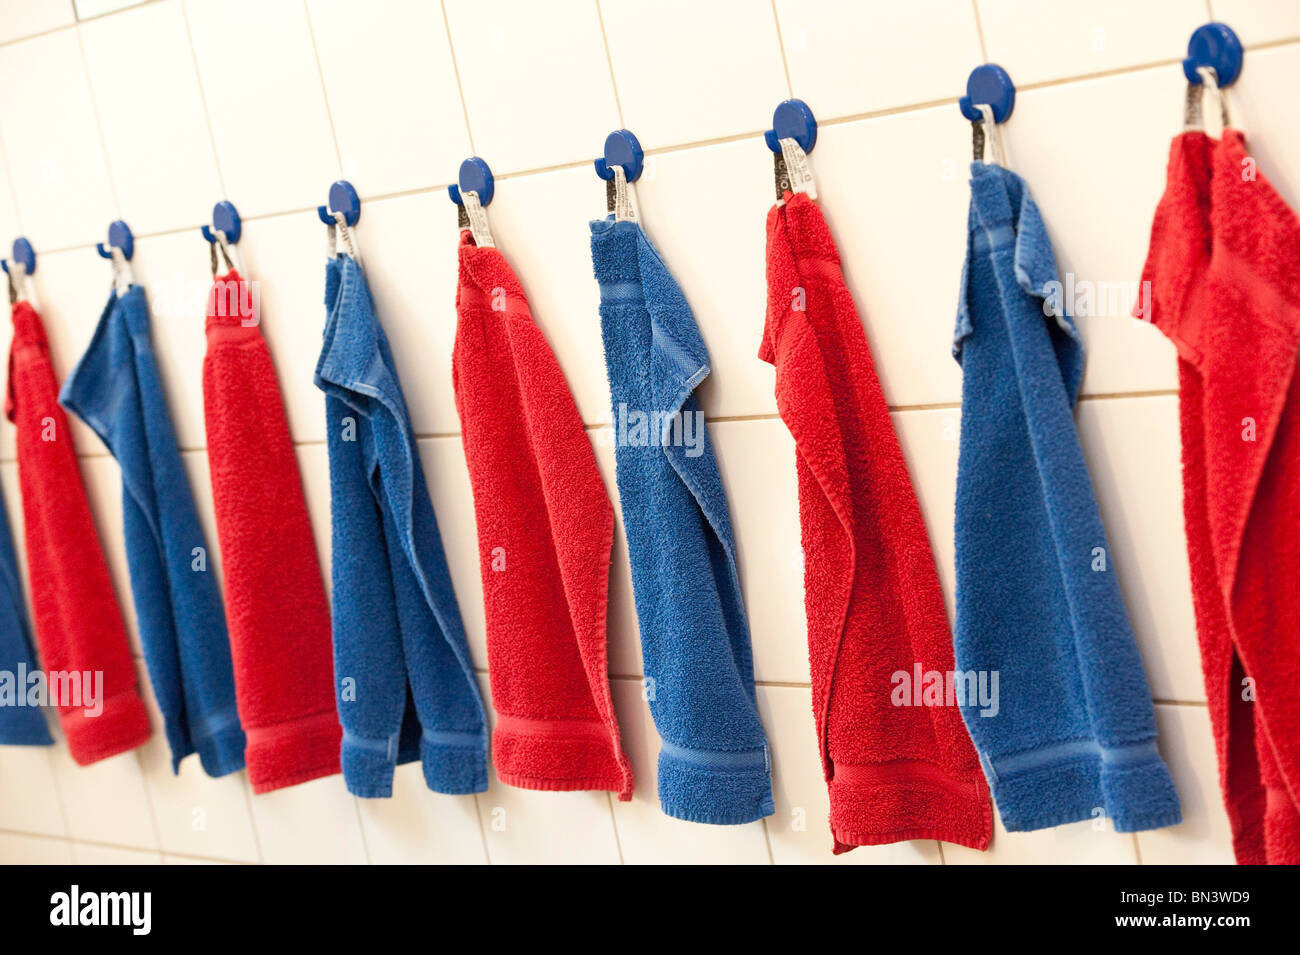 Towels hanging in a row on the wall - Stock Image